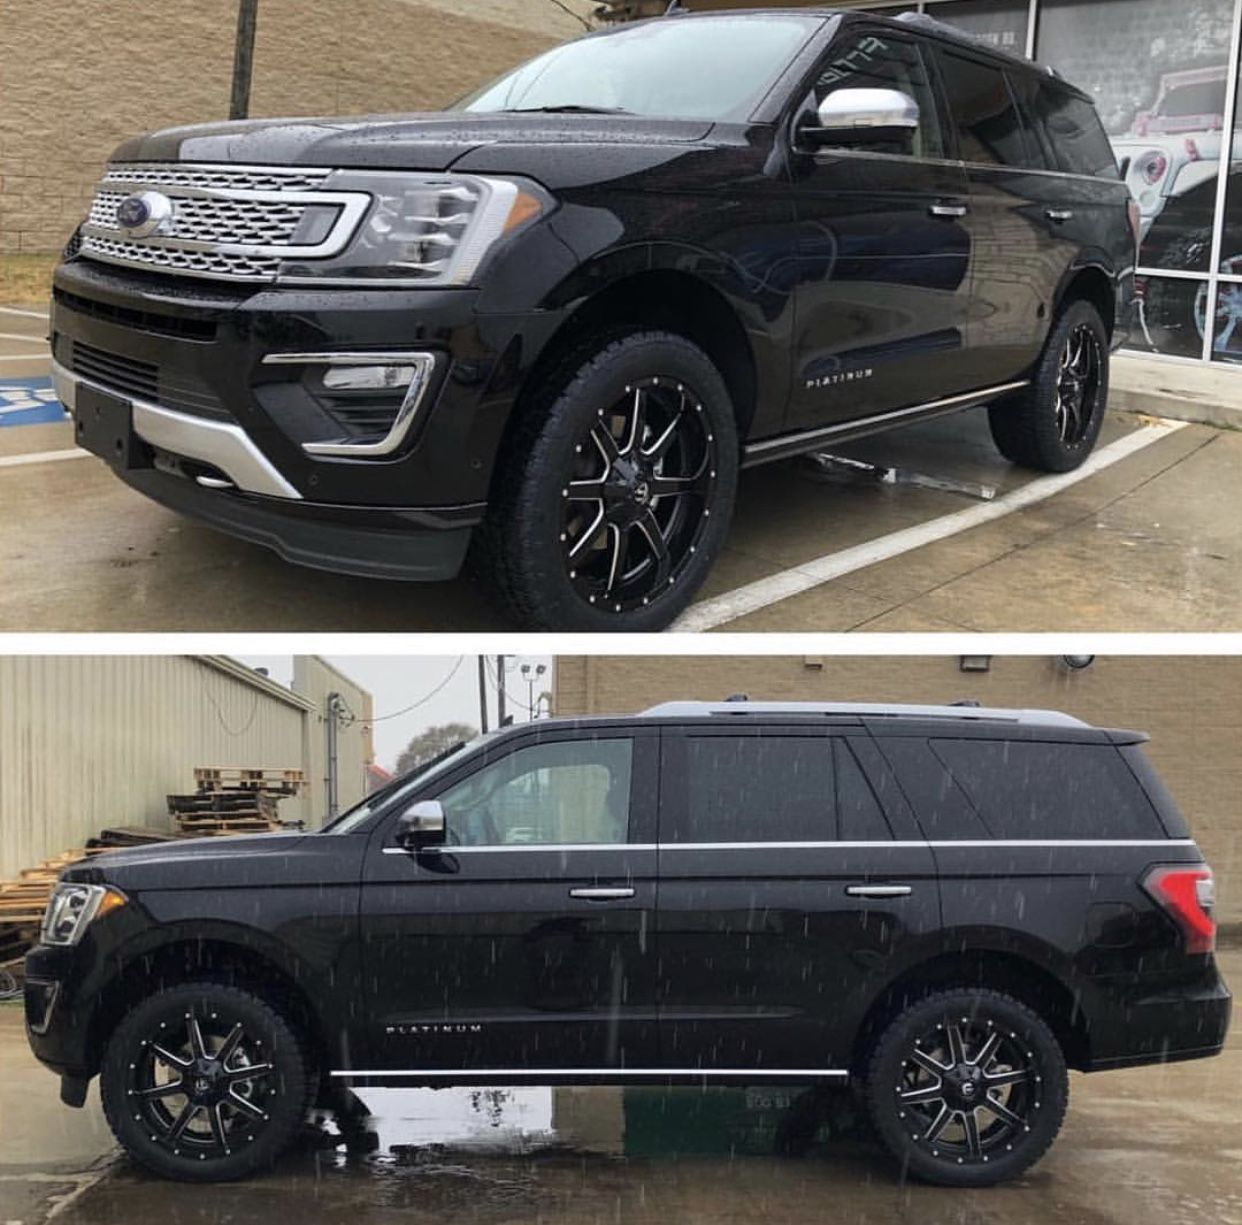 2018 Ford Expedition Lifted With Fuel Wheels With Images Ford